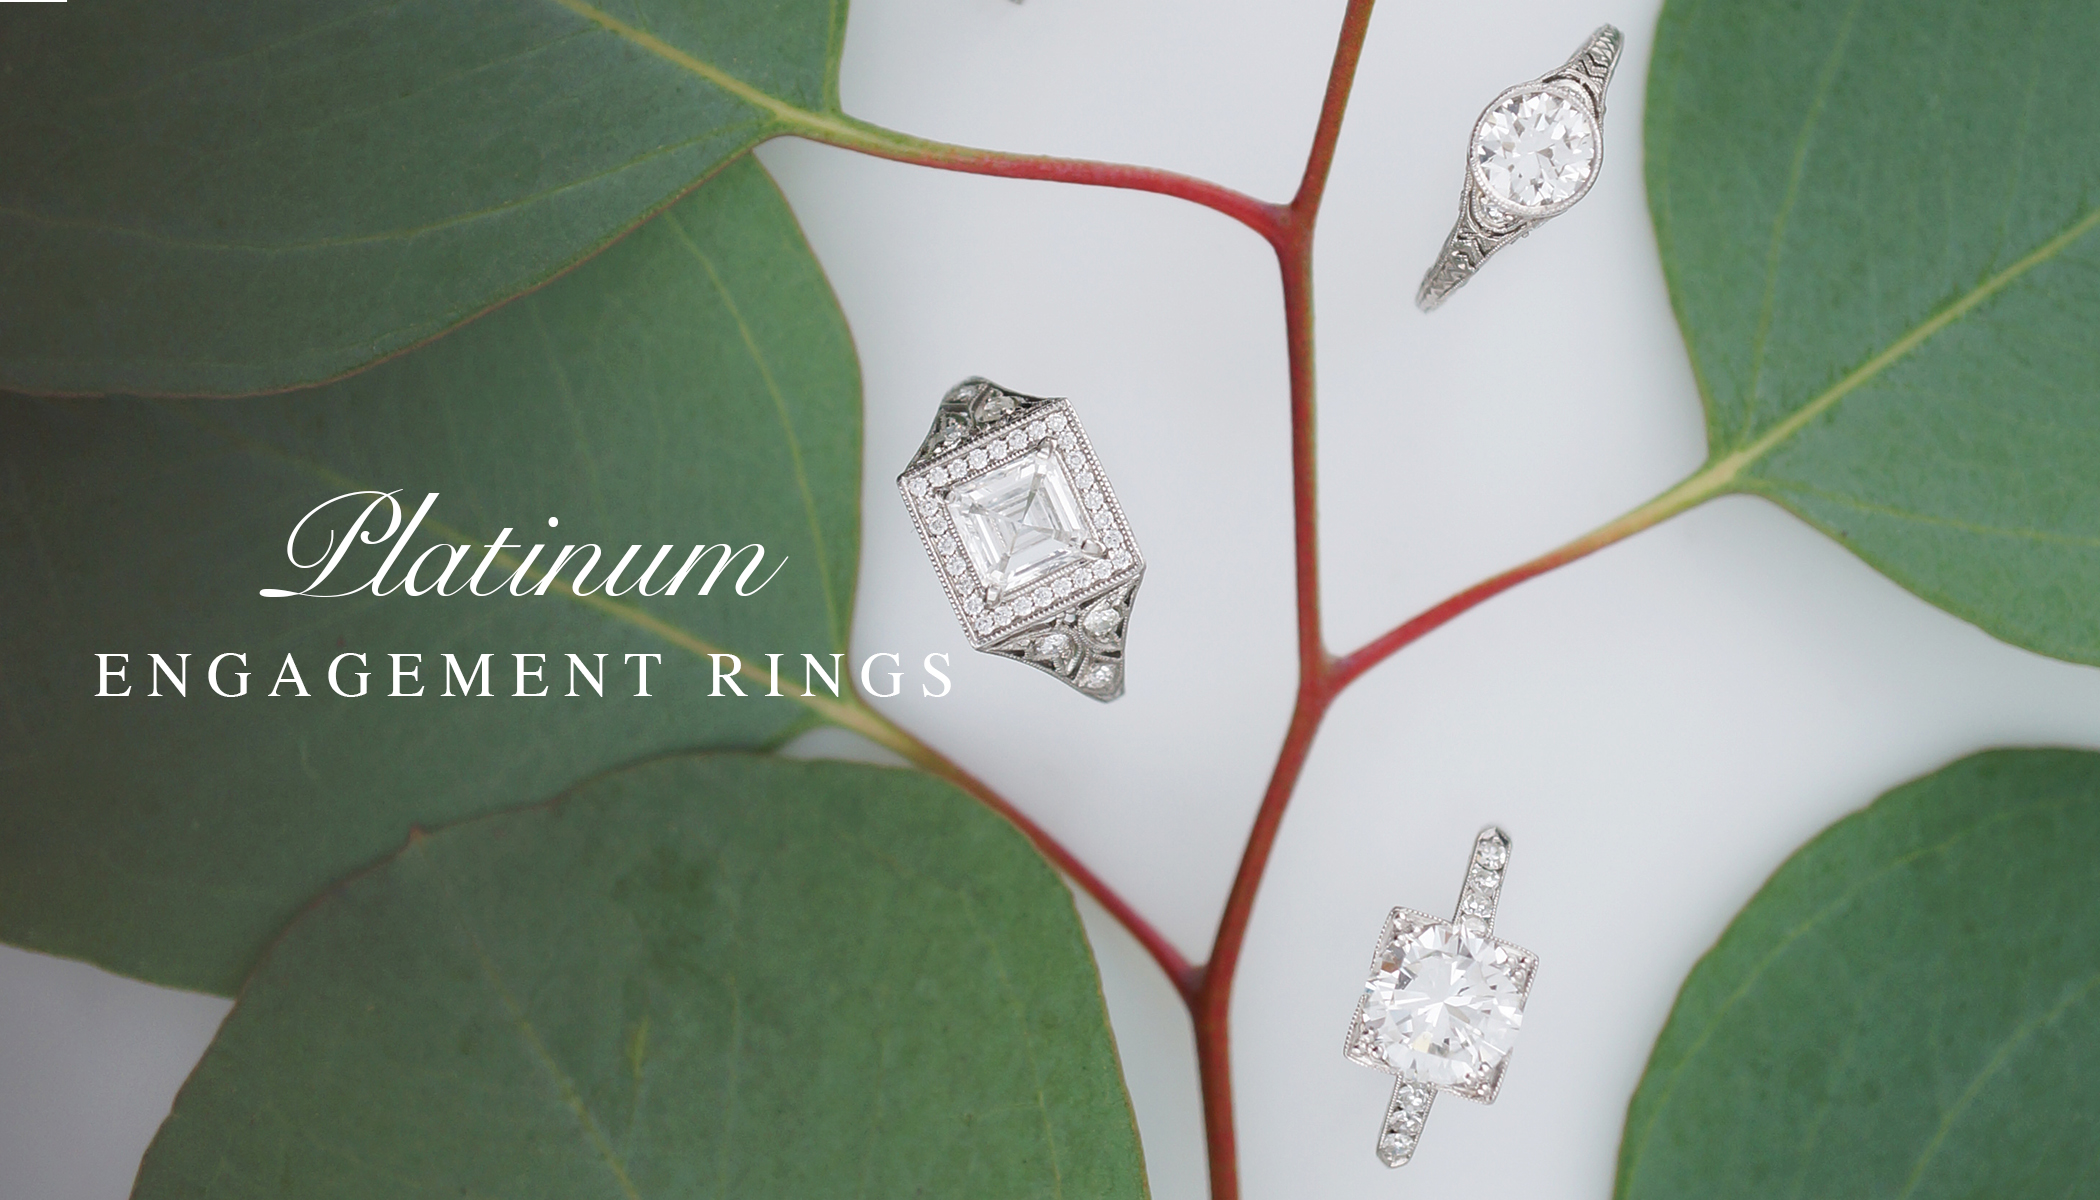 PlatinumEngagementRing_DiamondEngagementRing_FiligreeJewelers_Minneapolis_Northloop